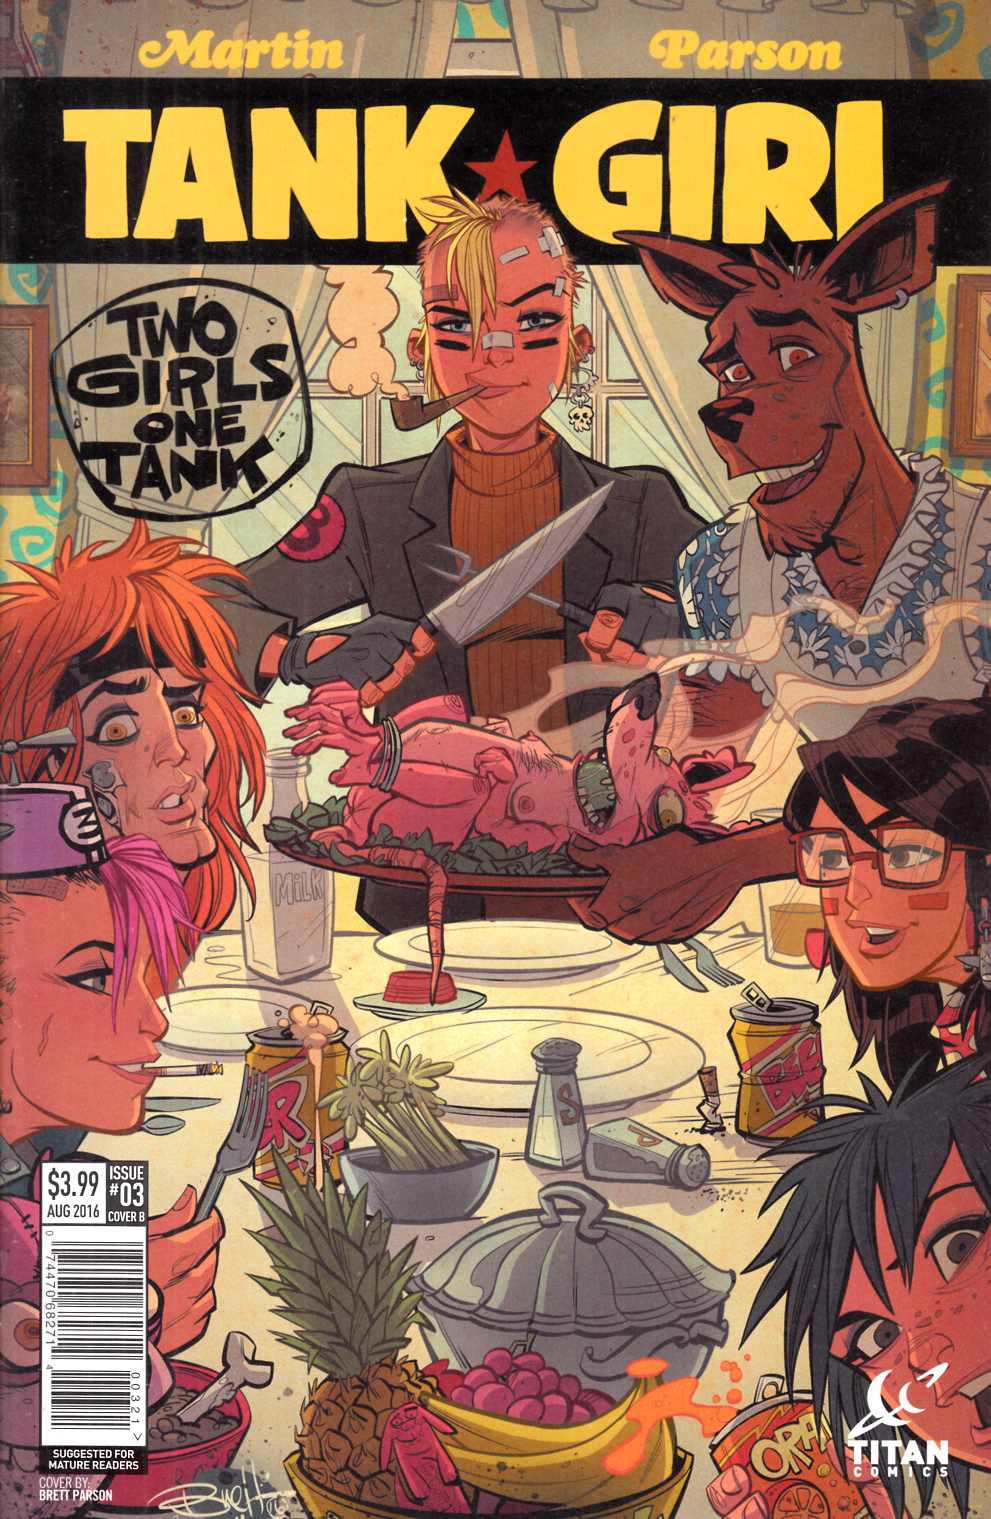 Tank Girl 2 Girls 1 Tank #3 Cover B- Parson [Titan Comic] LARGE